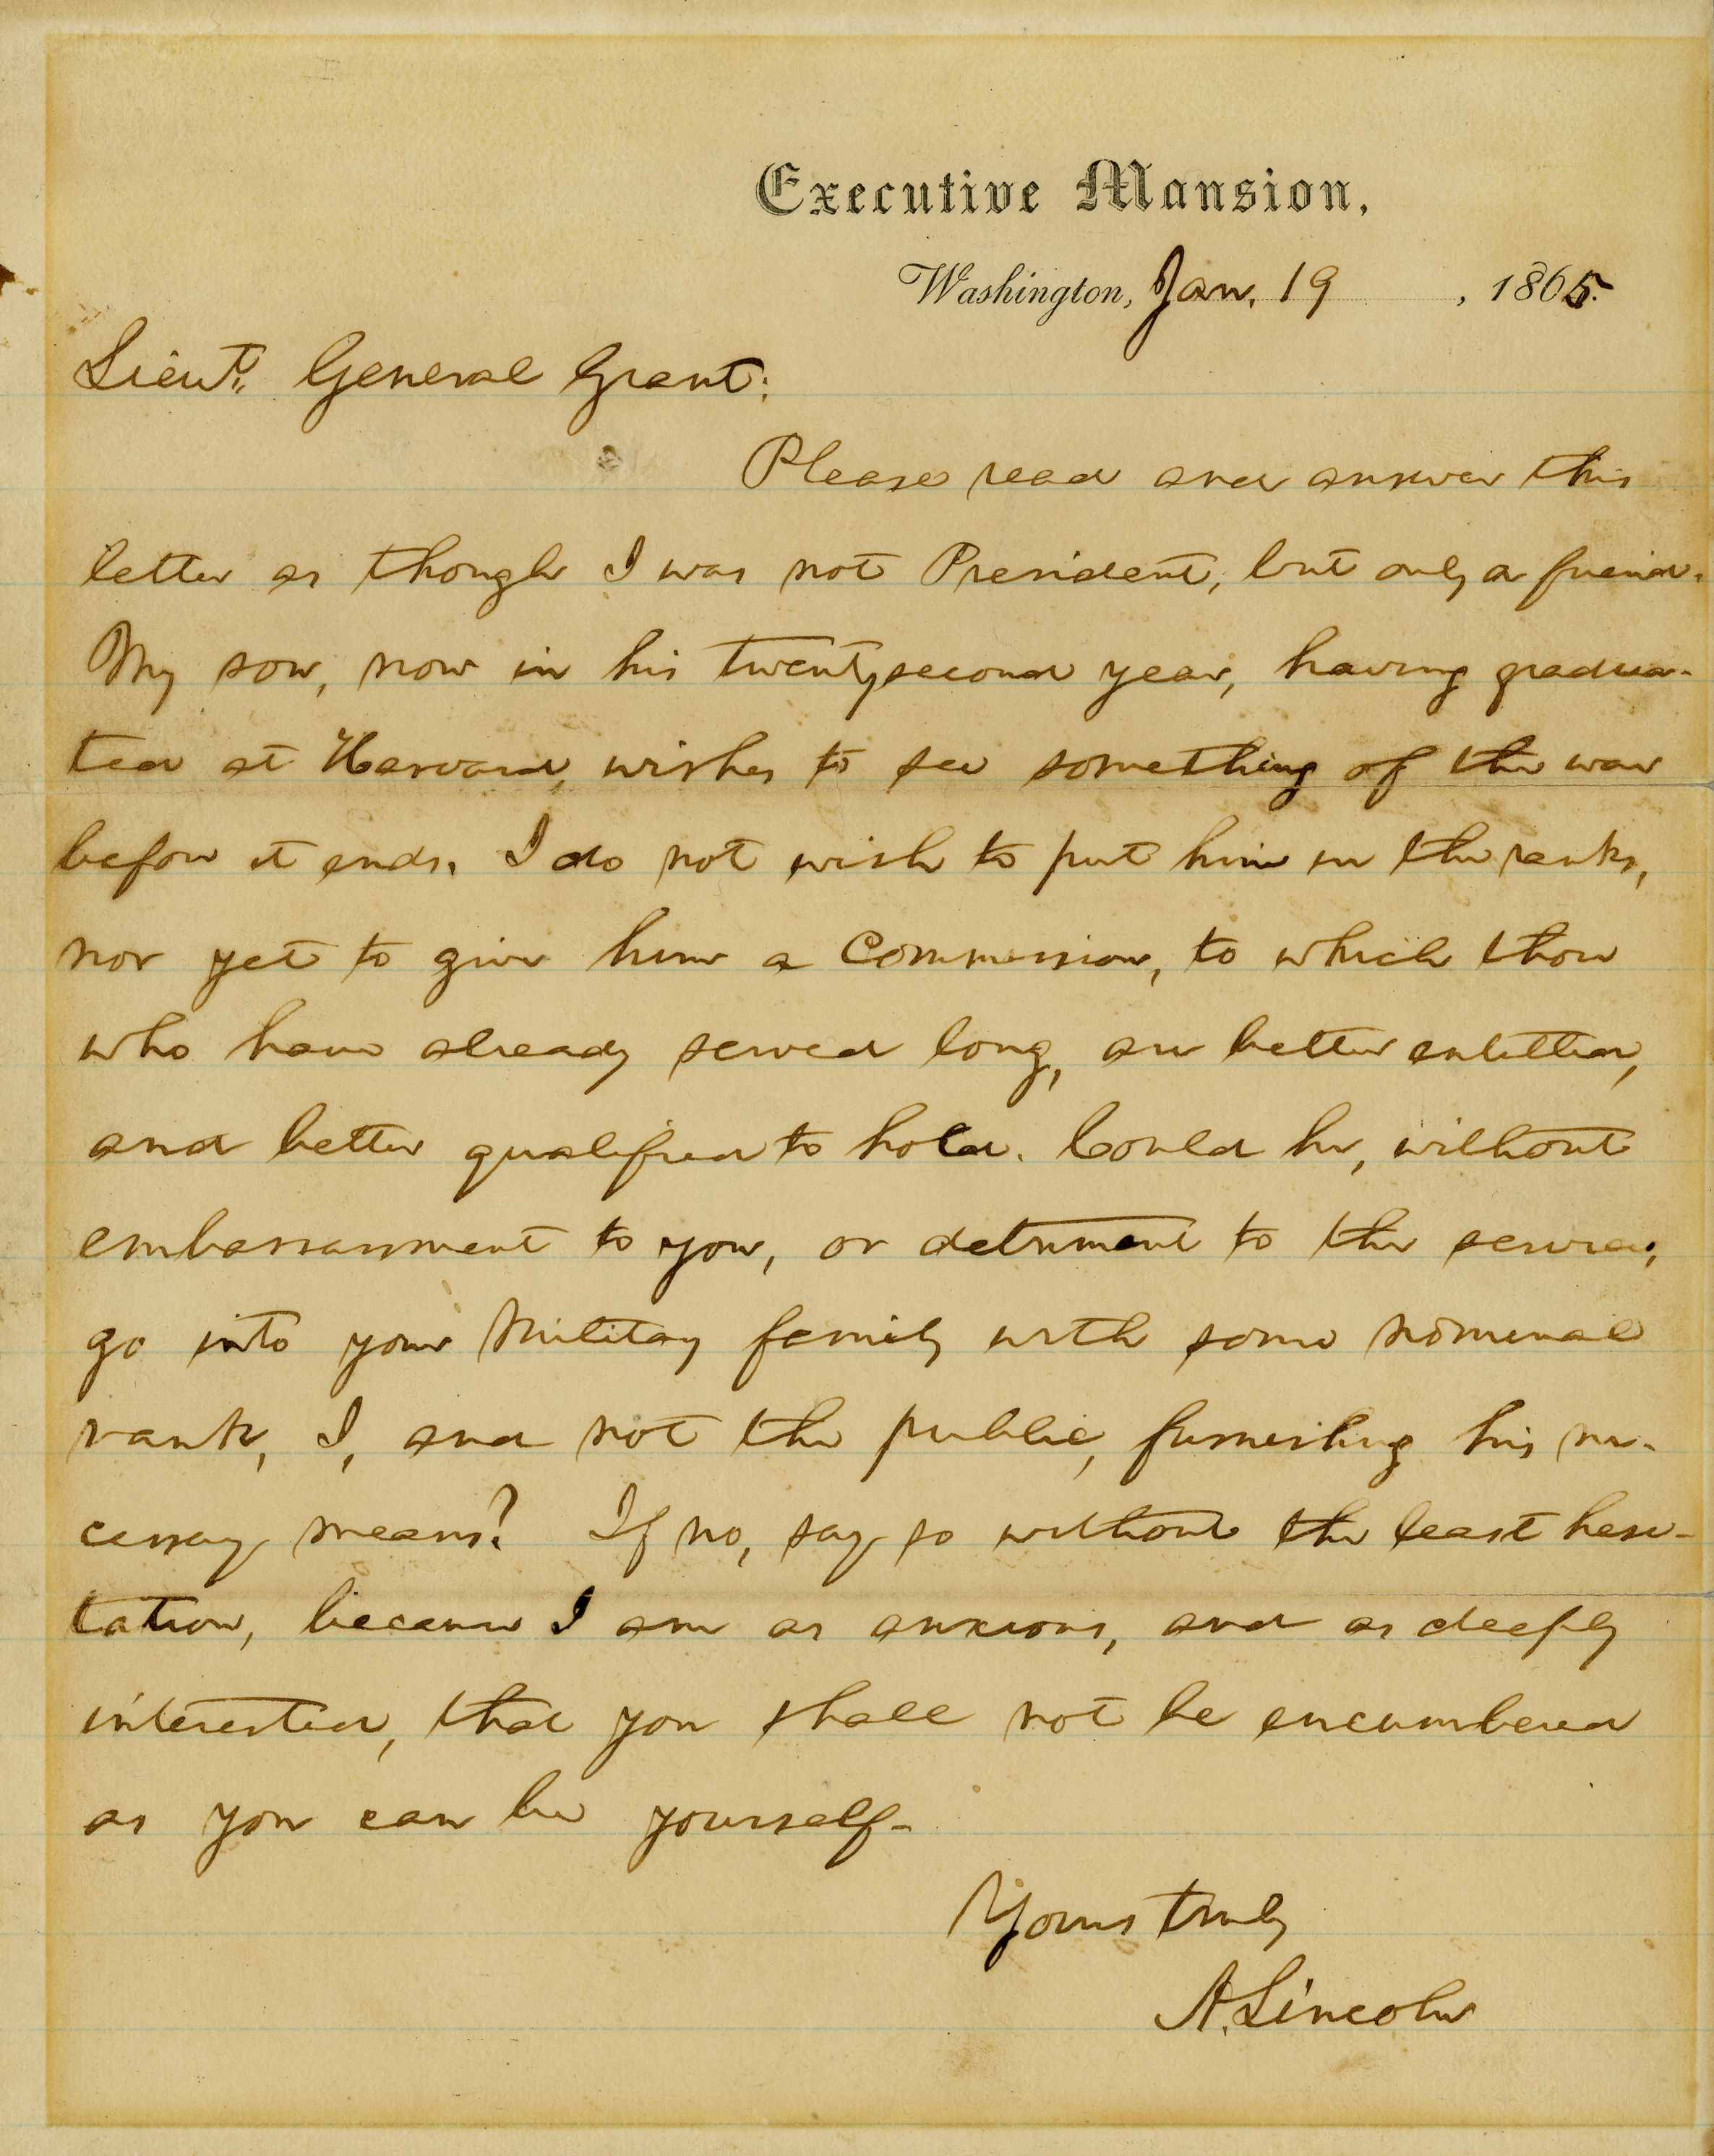 Lincoln Asks General Grant as a Friend, for a Favor: Find a Place for His Son, Robert, on His Staff